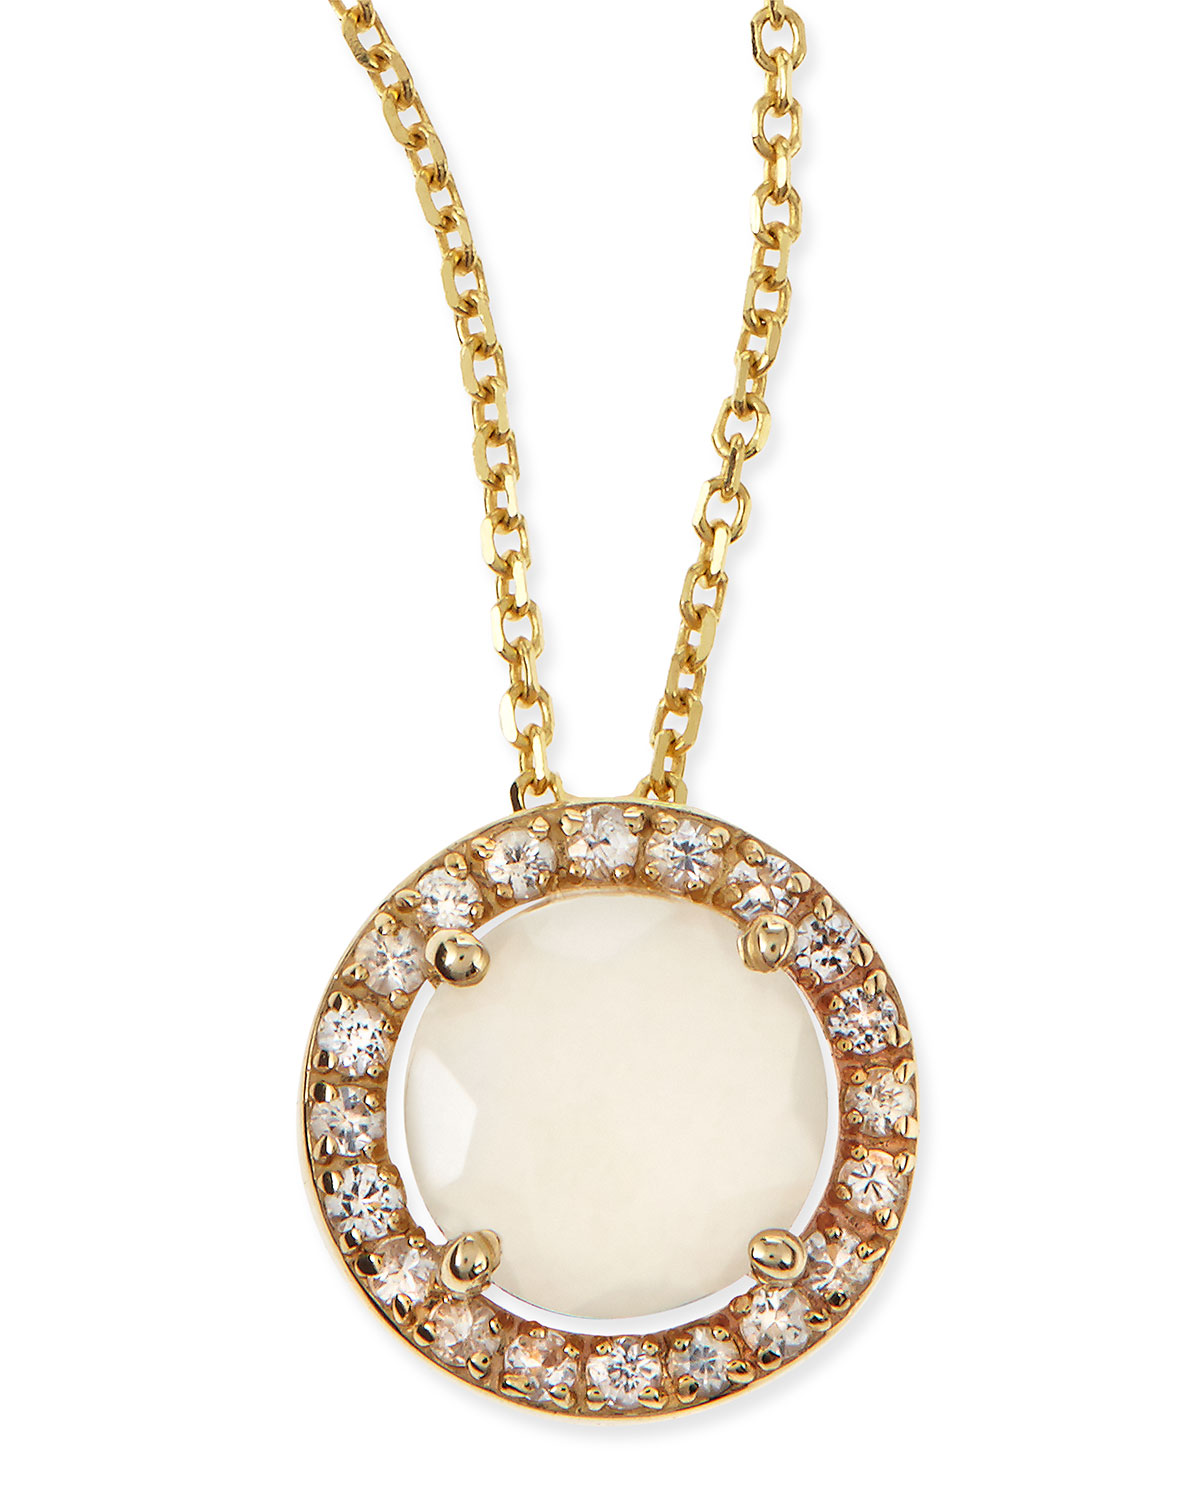 6mm Moonstone & White Sapphire Pendant Necklace - KALAN by Suzanne Kalan